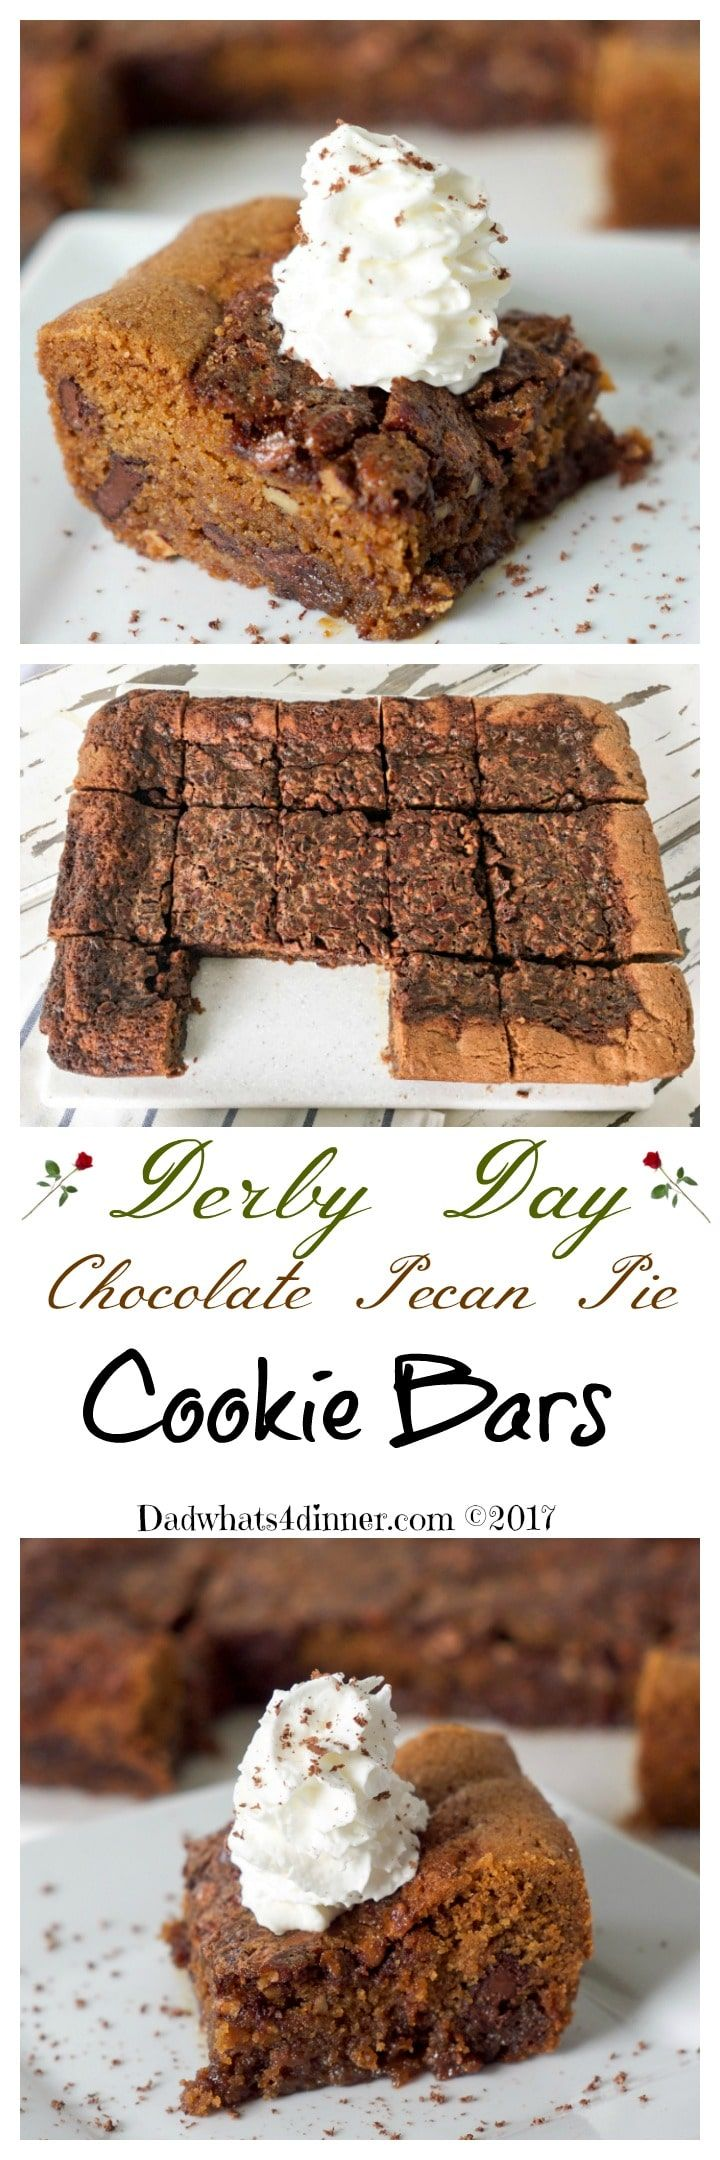 These luscious Derby Day Chocolate Pecan Pie Cookie Bars is the perfect bite size, easy to serve treat for your Derby Day party guests. #recipe #dessert #cookie bars #Derby #Pecan Pie www.dadwhats4dinner.com via @dadwhats4dinner